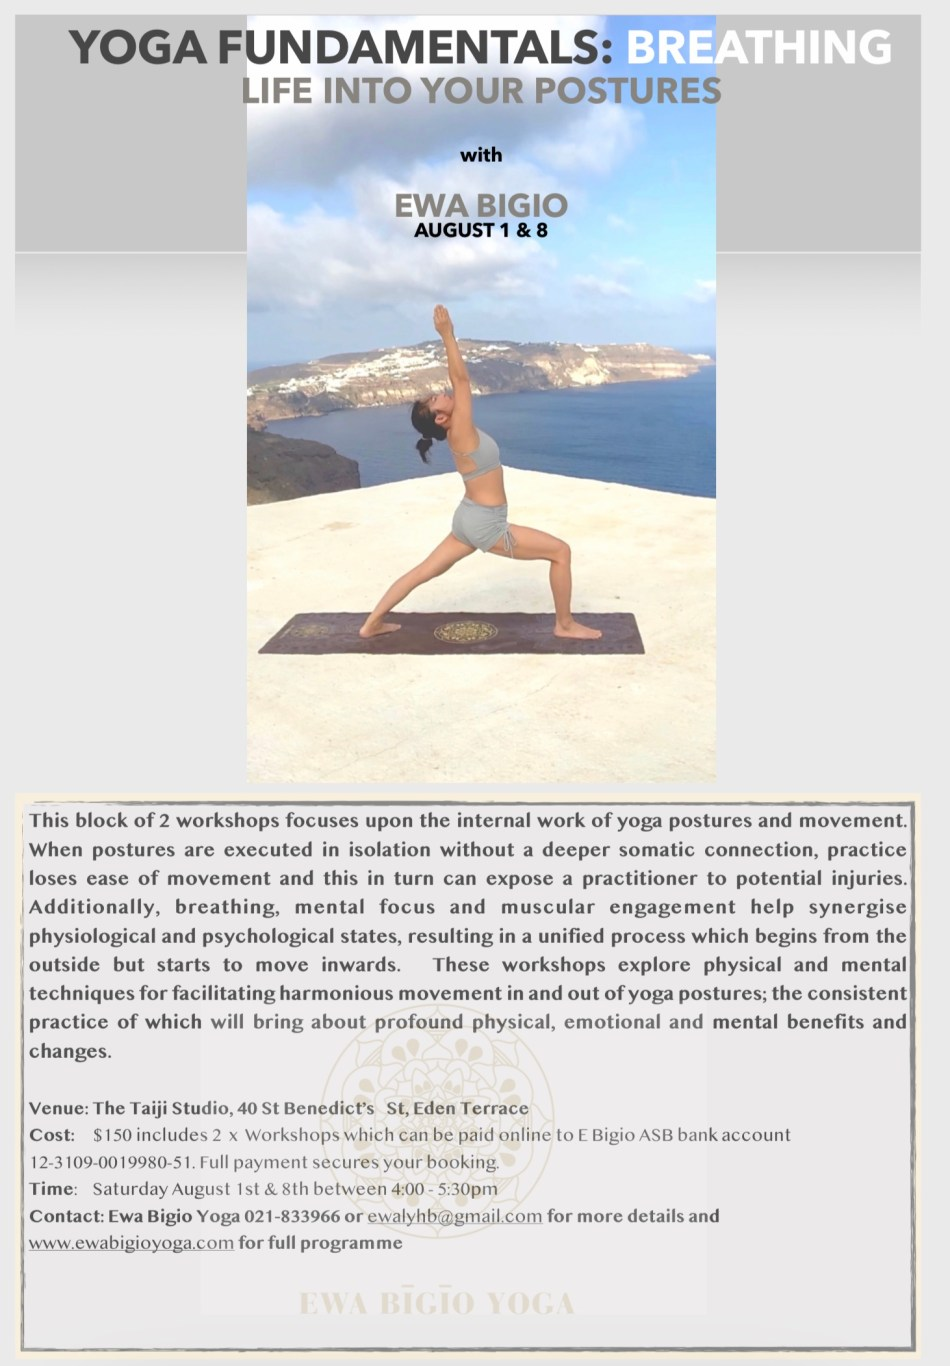 MODULE 2: BREATHING LIFE INTO YOUR POSTURES